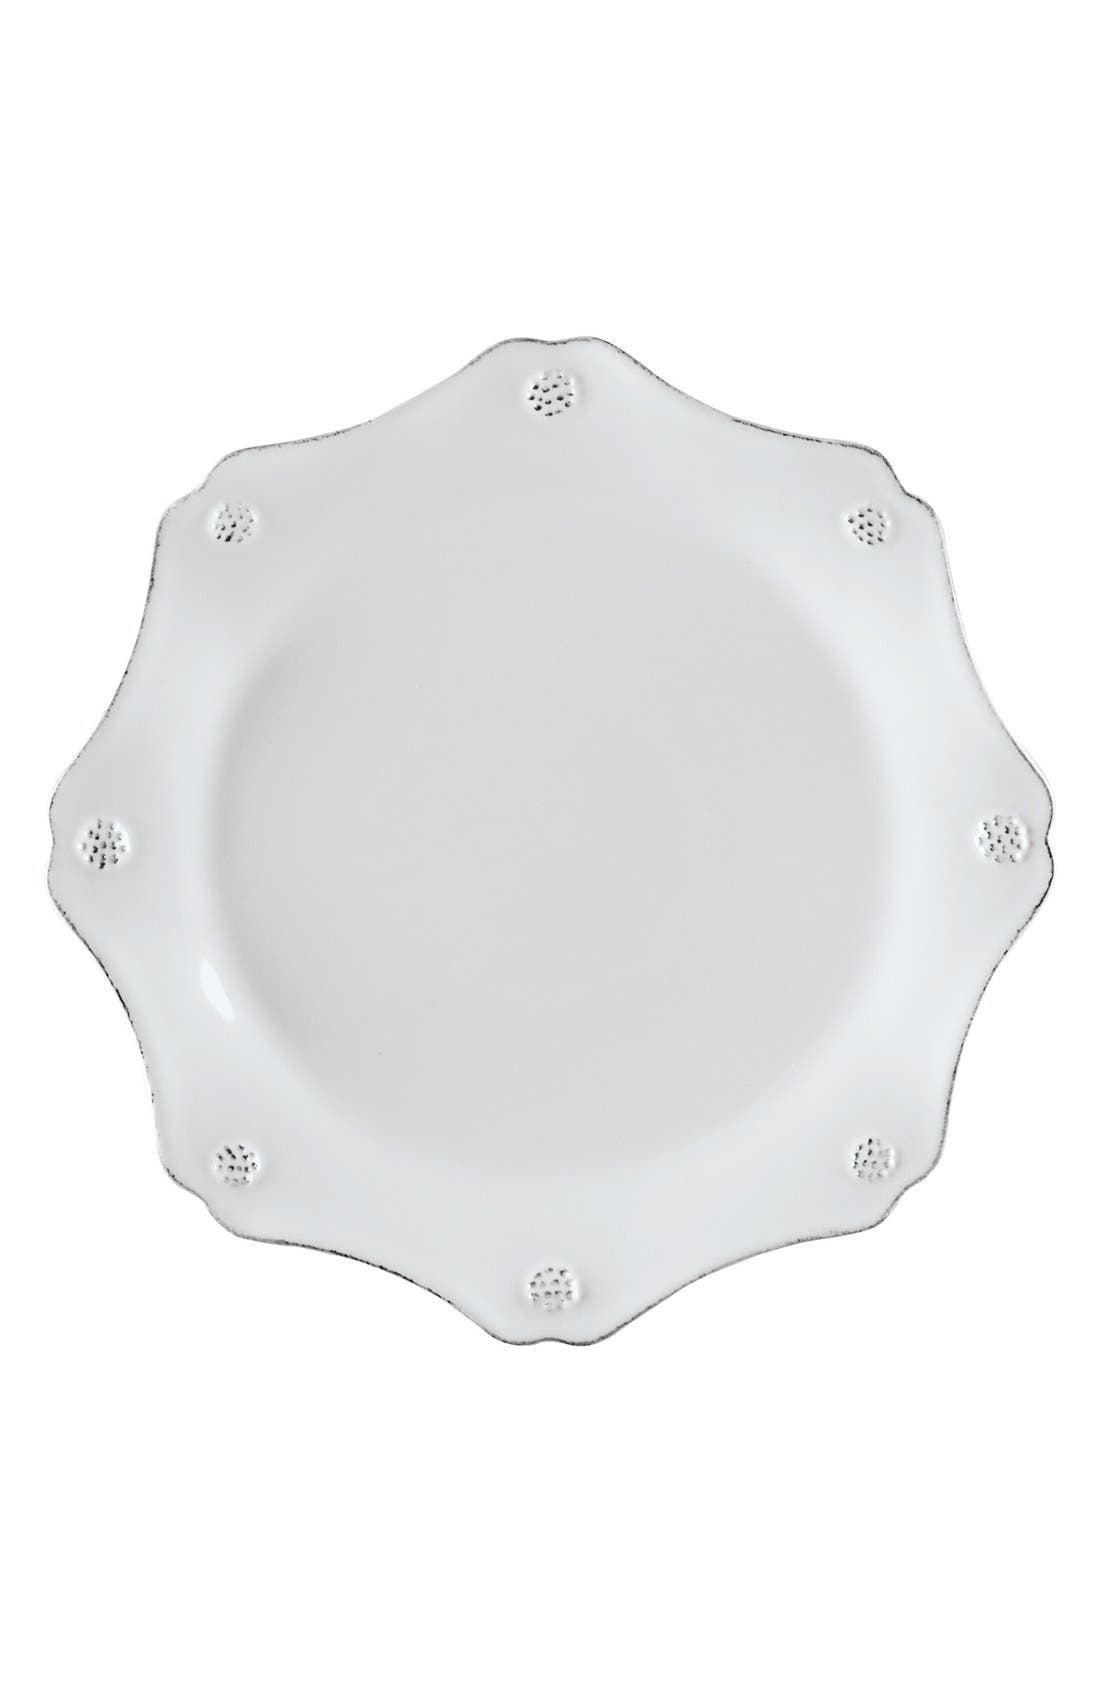 'Berry and Thread' Scalloped Salad Plate,                             Main thumbnail 1, color,                             WHITEWASH